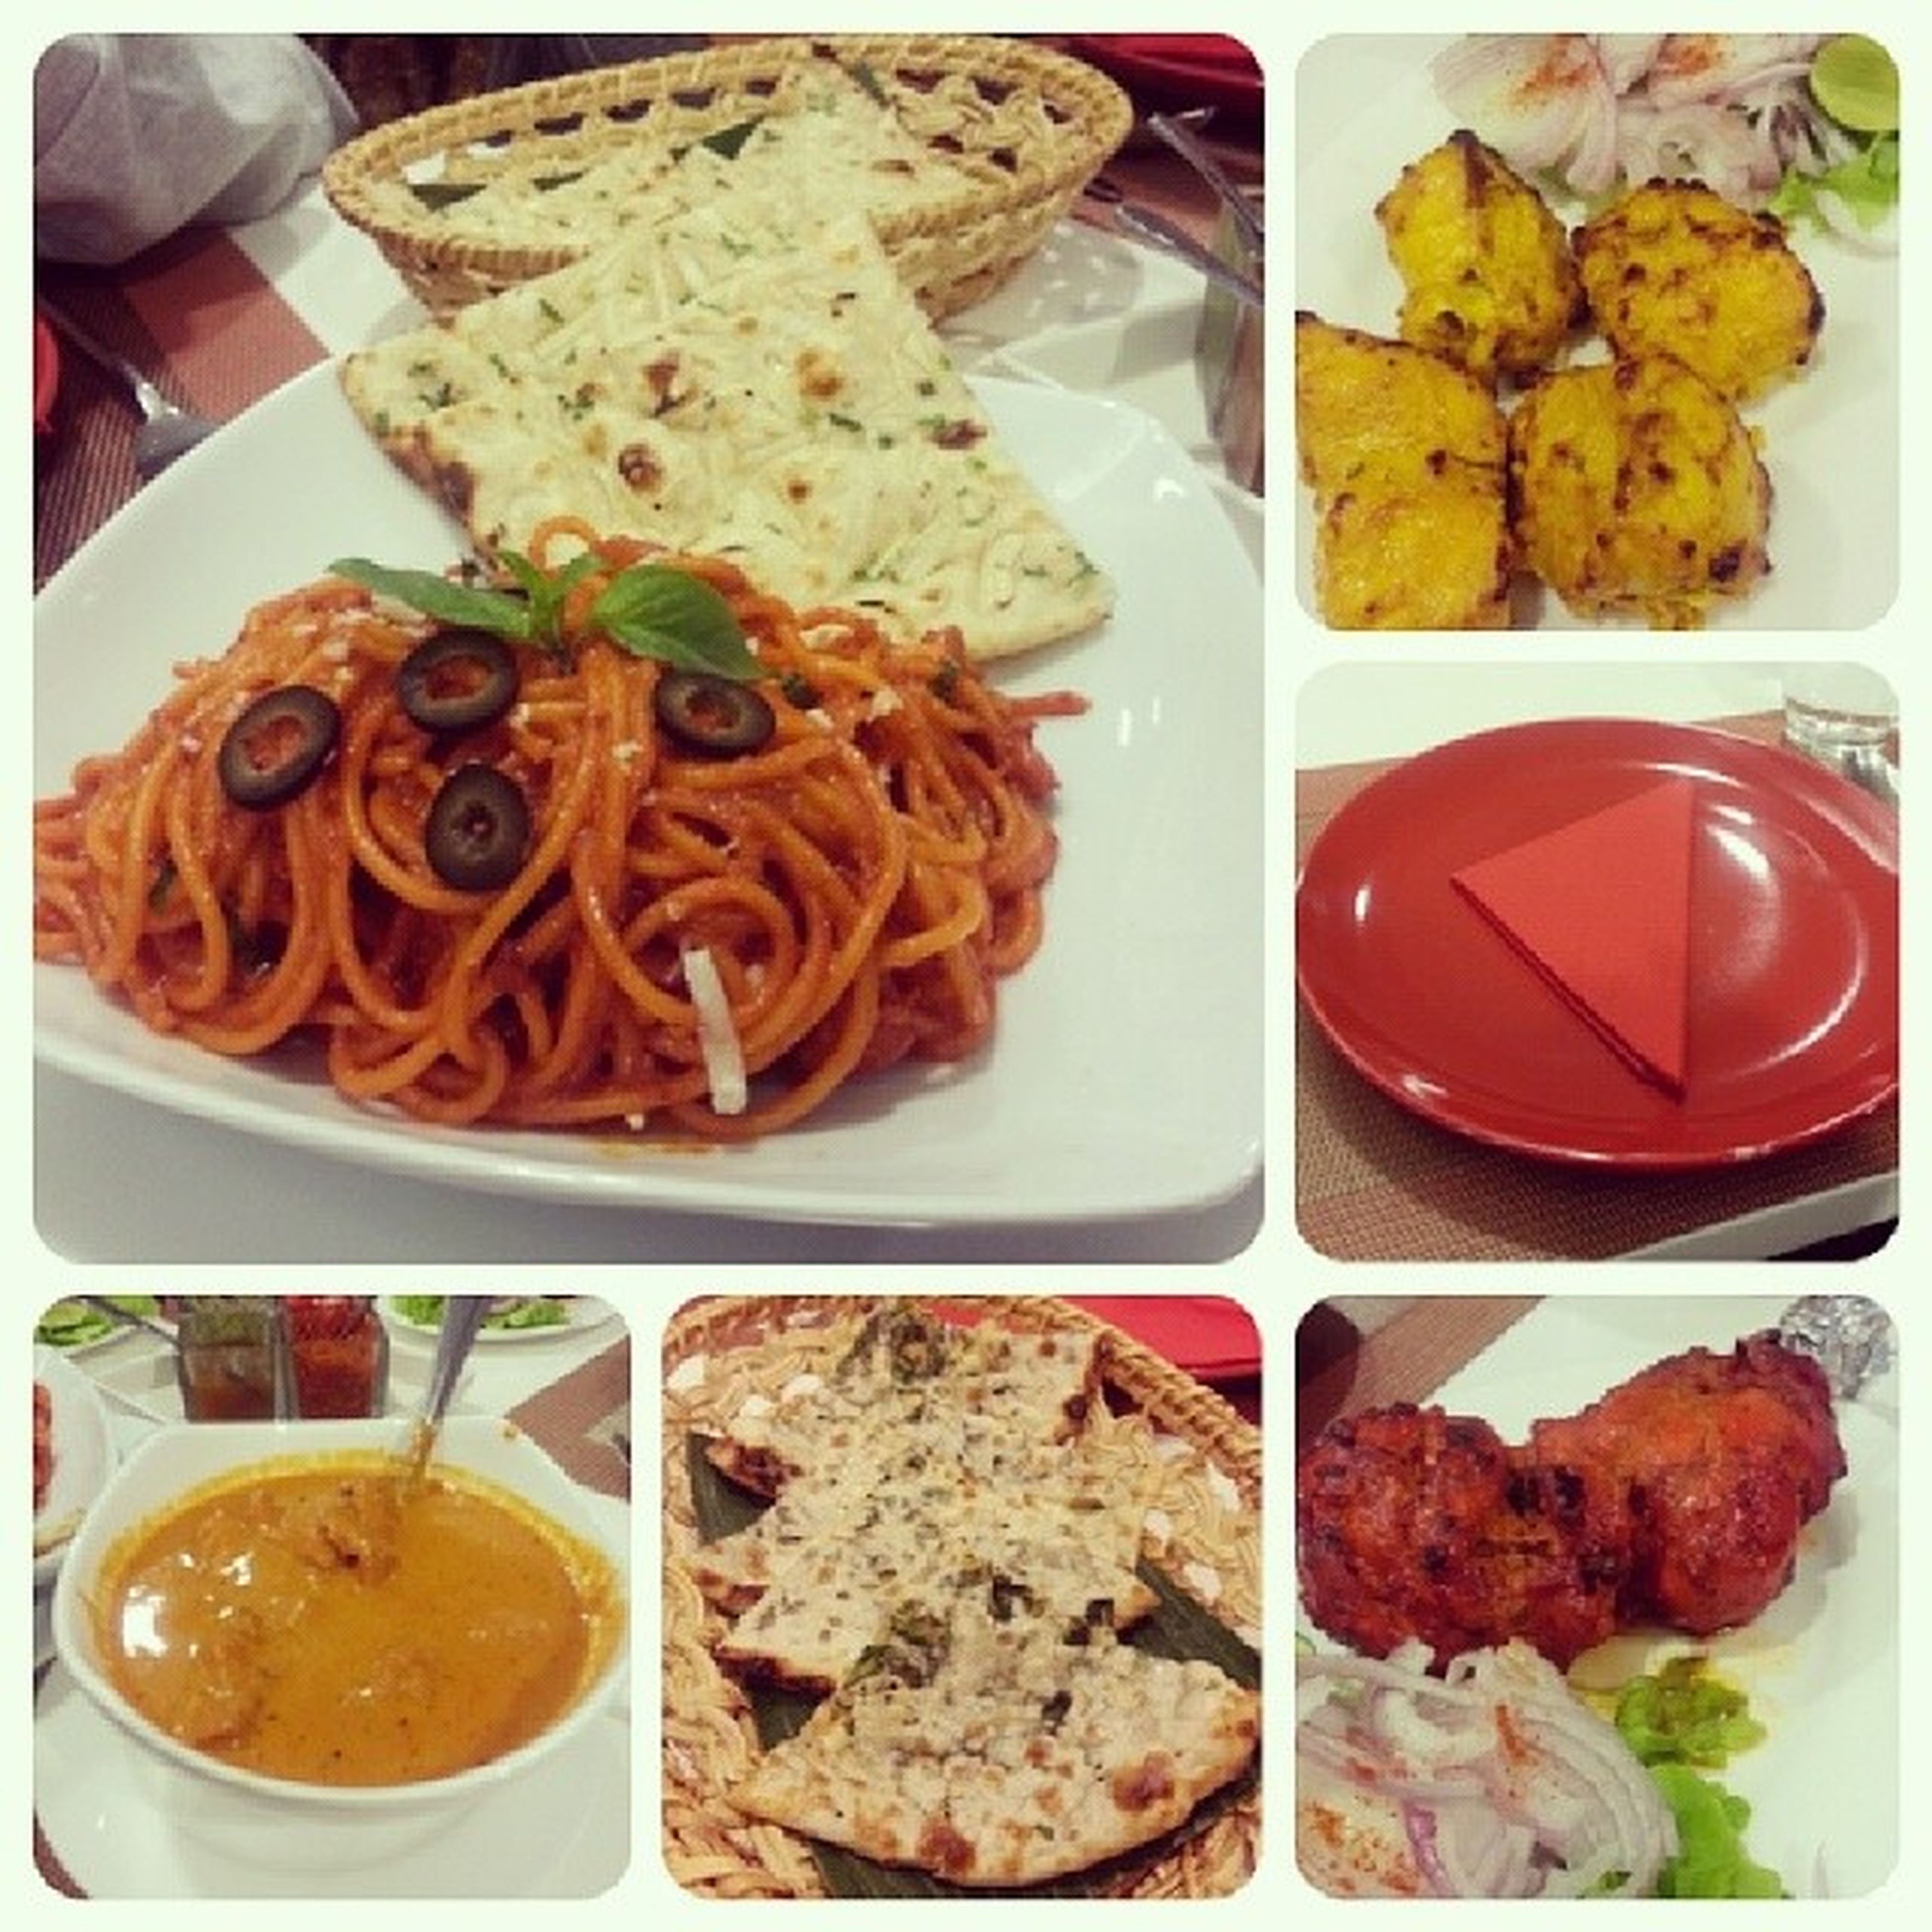 Indian Foods for Lunch with Colleague ... Too Redish ^^ ลองทานดู ก้อโอนะ แต่ไม่ถูกปากเท่าไหร่